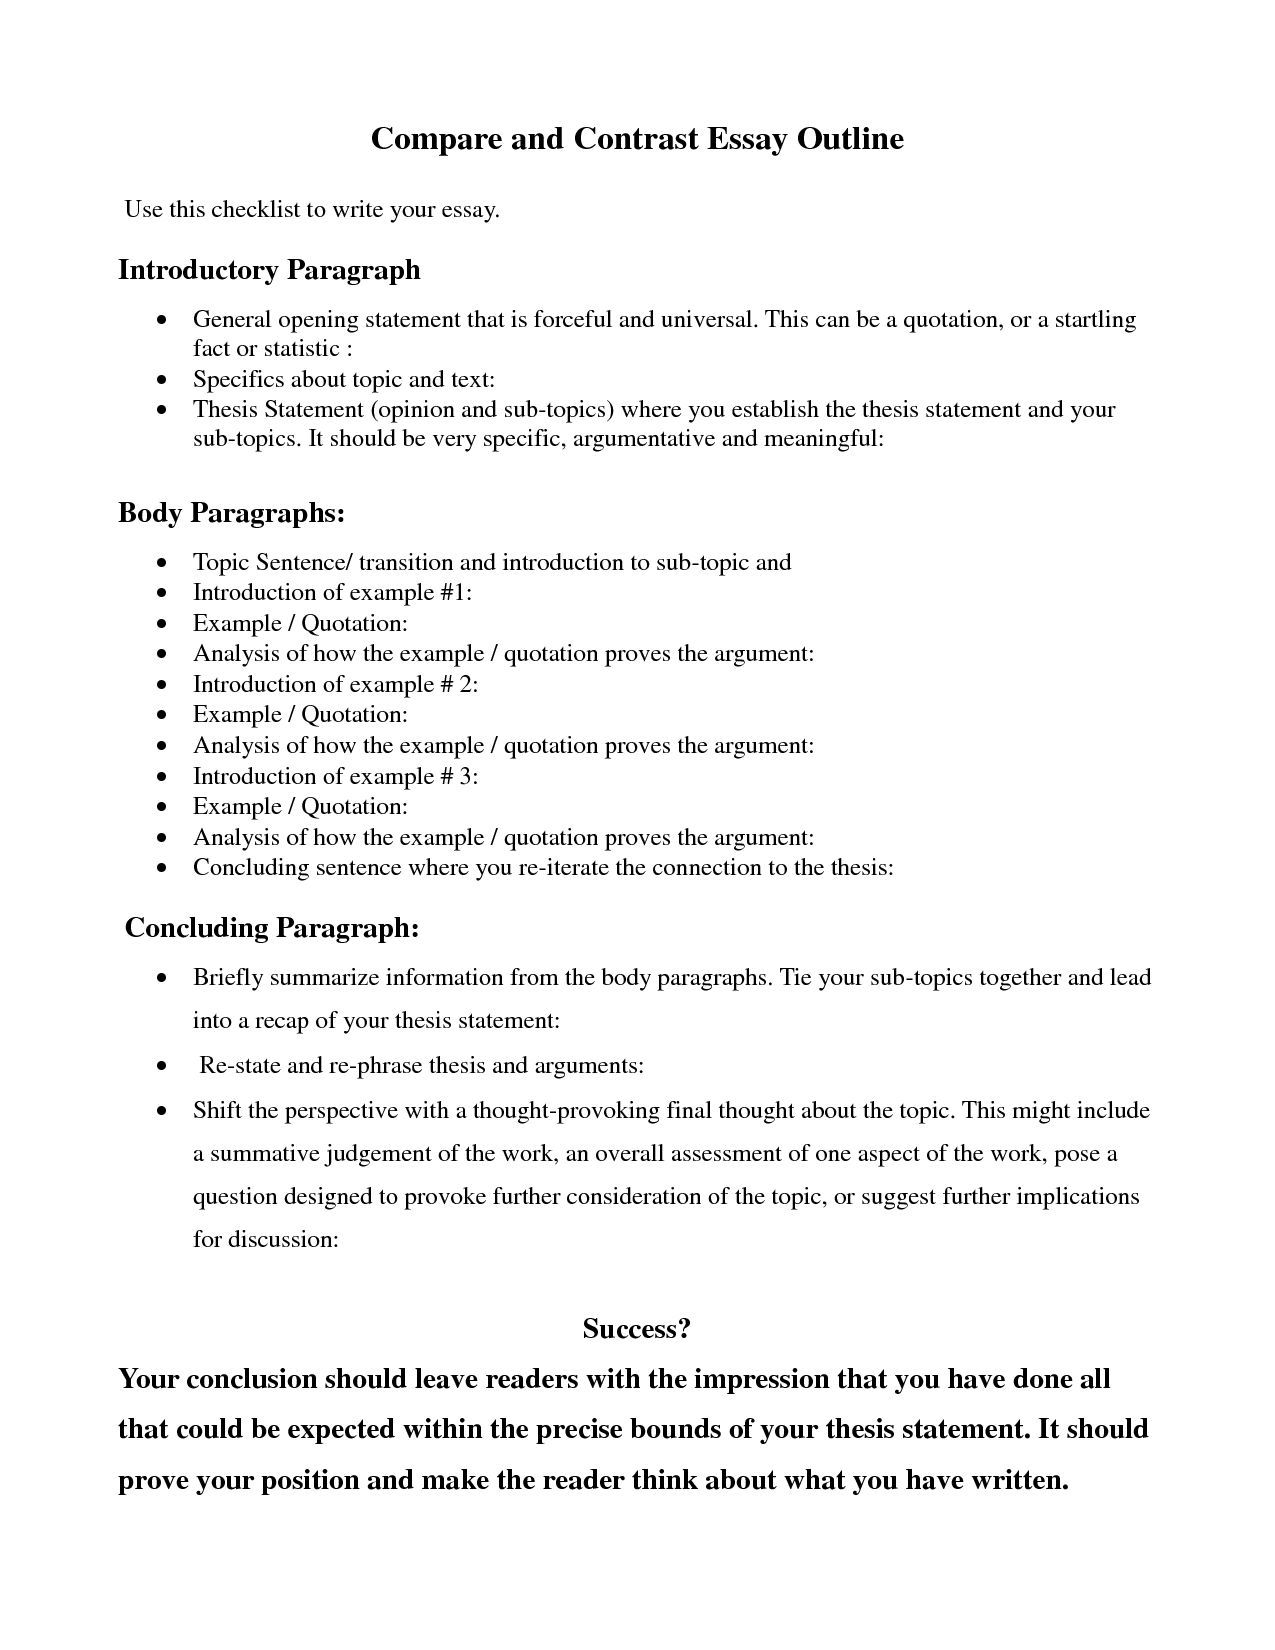 Thesi Statement Outline Example Essay Questions Formal Writing Topics